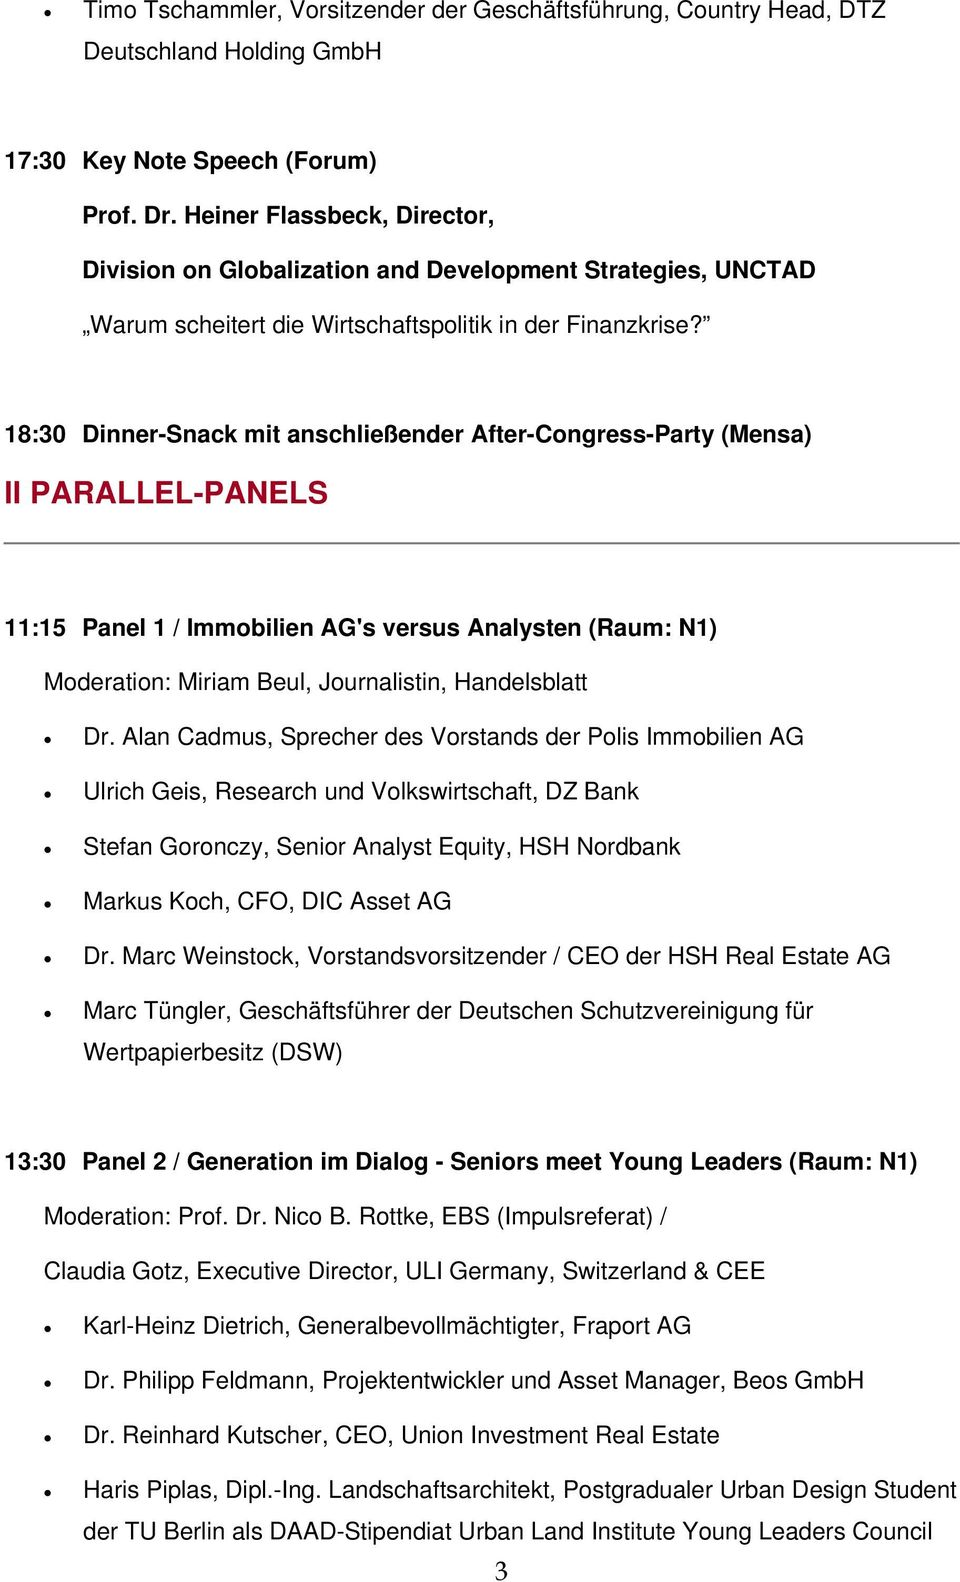 18:30 Dinner-Snack mit anschließender After-Congress-Party (Mensa) II PARALLEL-PANELS 11:15 Panel 1 / Immobilien AG's versus Analysten (Raum: N1) Moderation: Miriam Beul, Journalistin, Handelsblatt